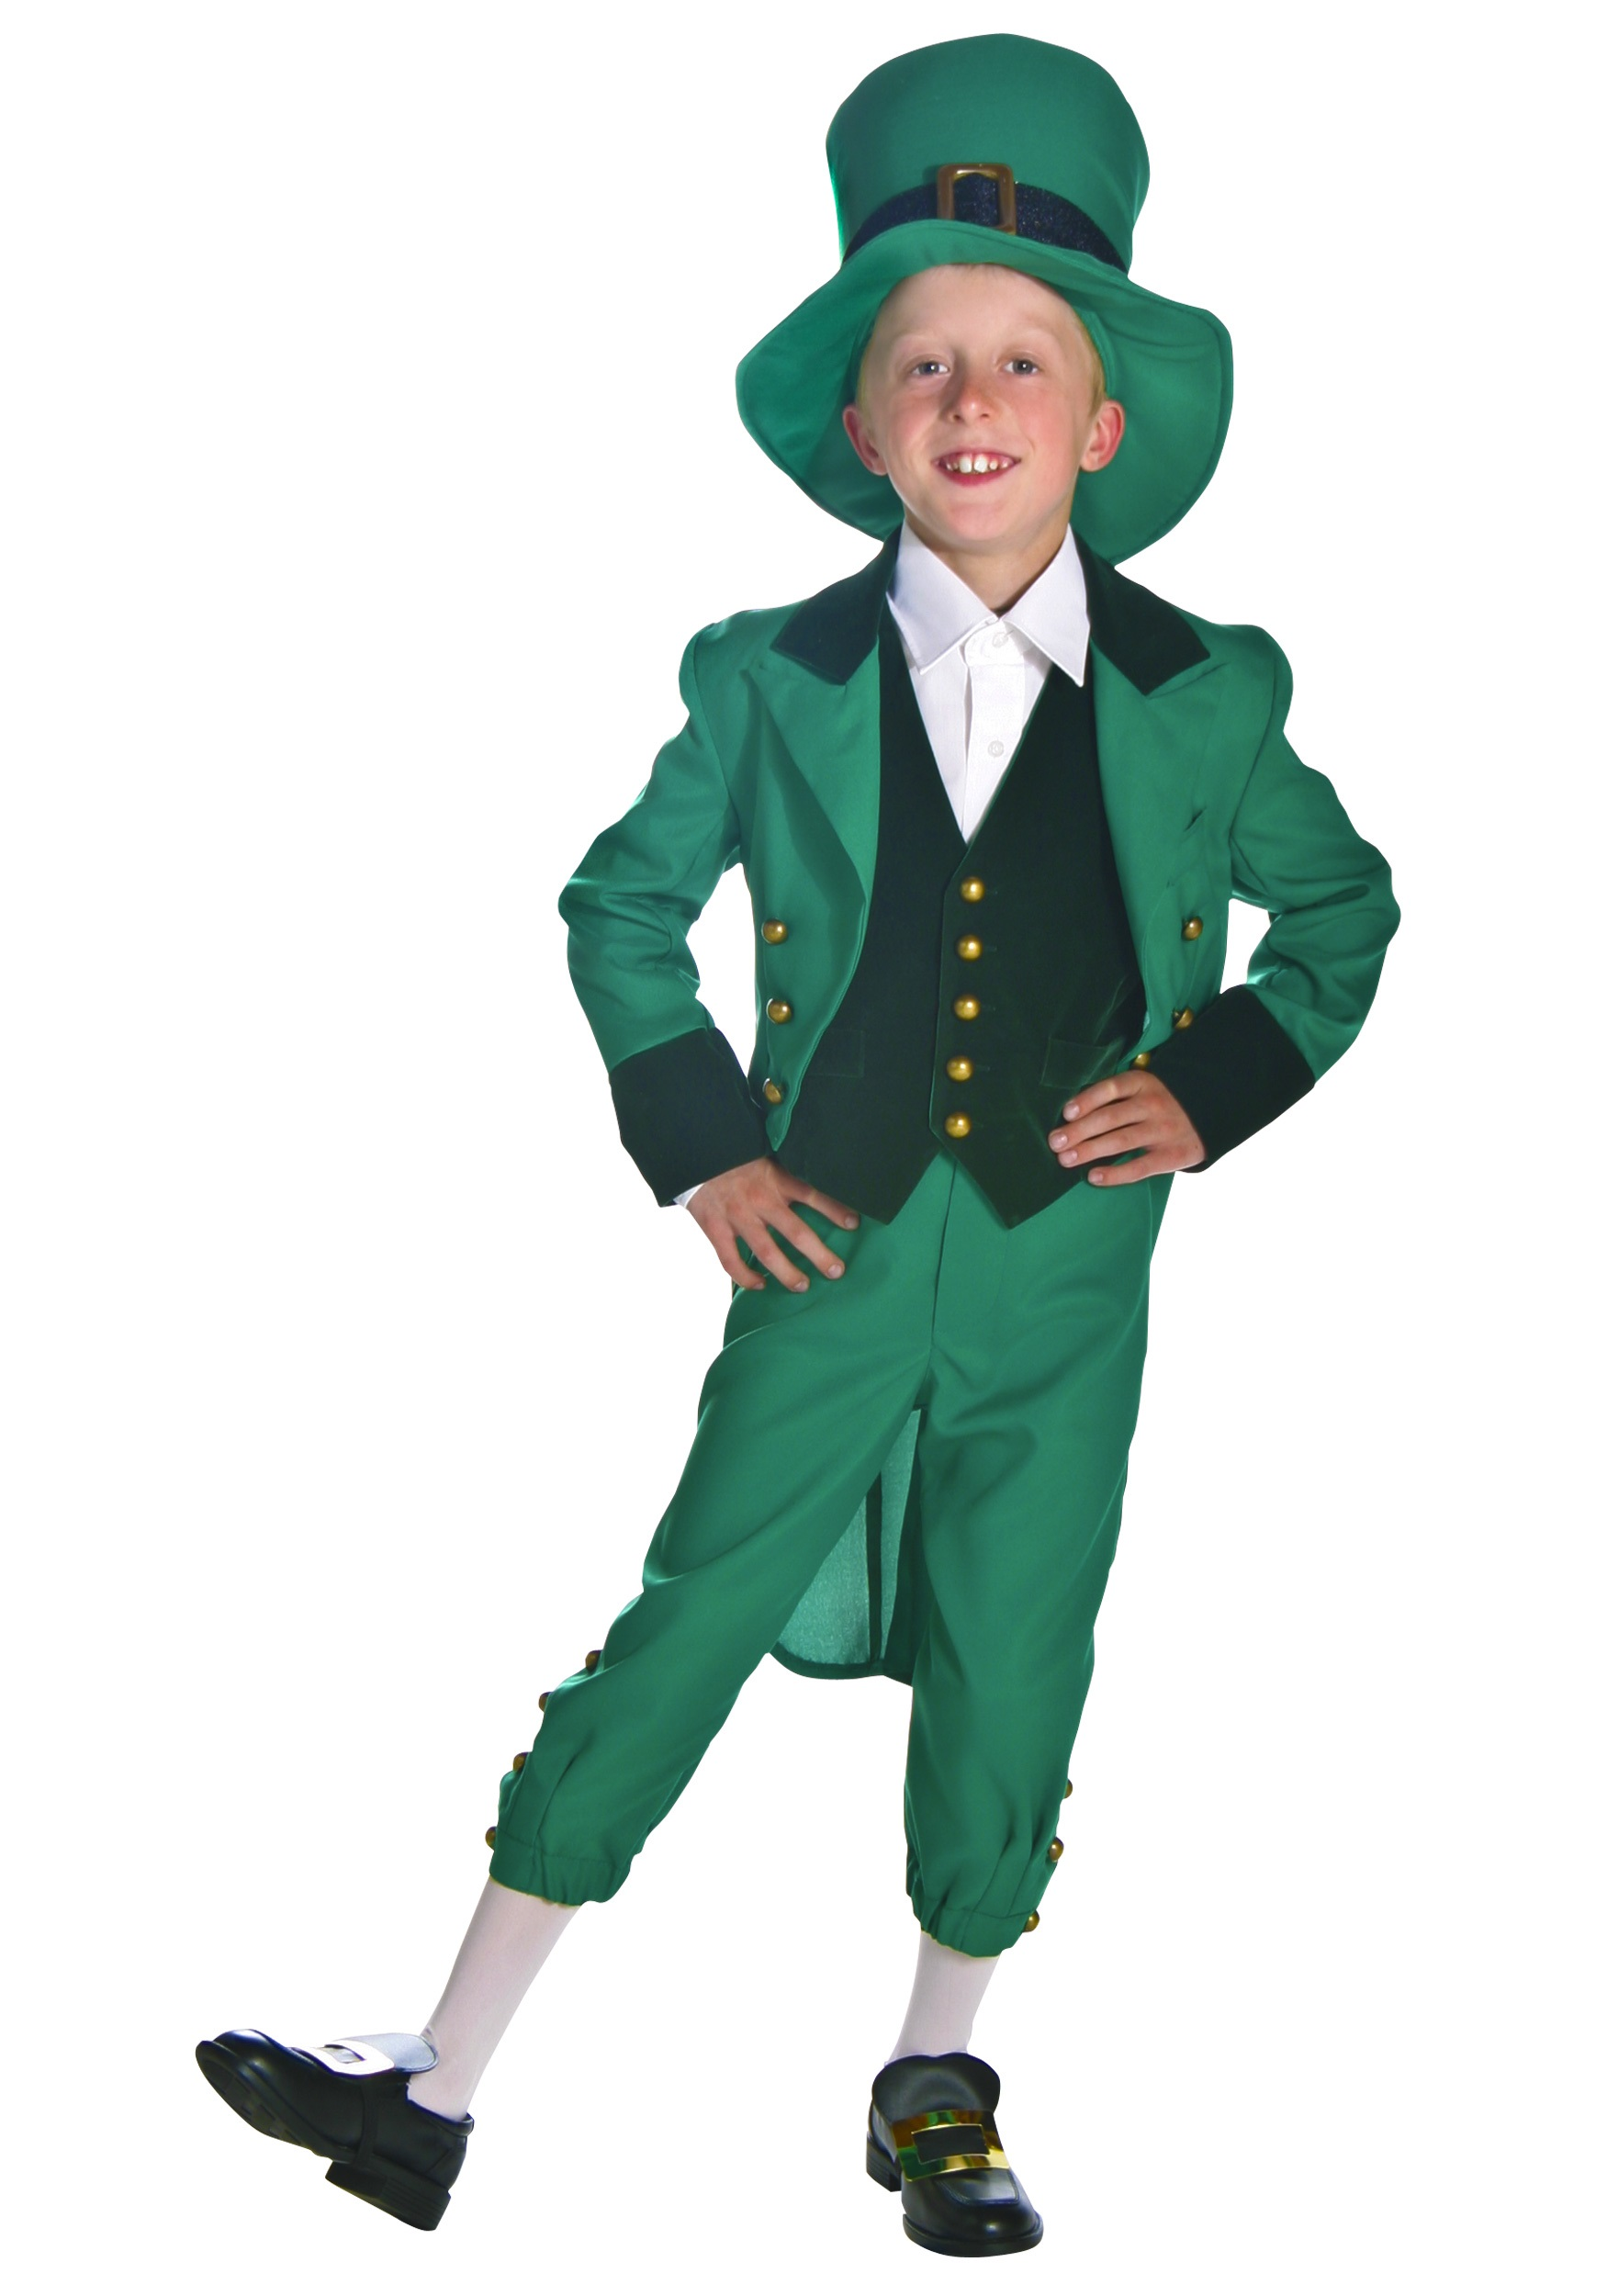 sc 1 st  Halloween Costumes : kids costumes ireland  - Germanpascual.Com